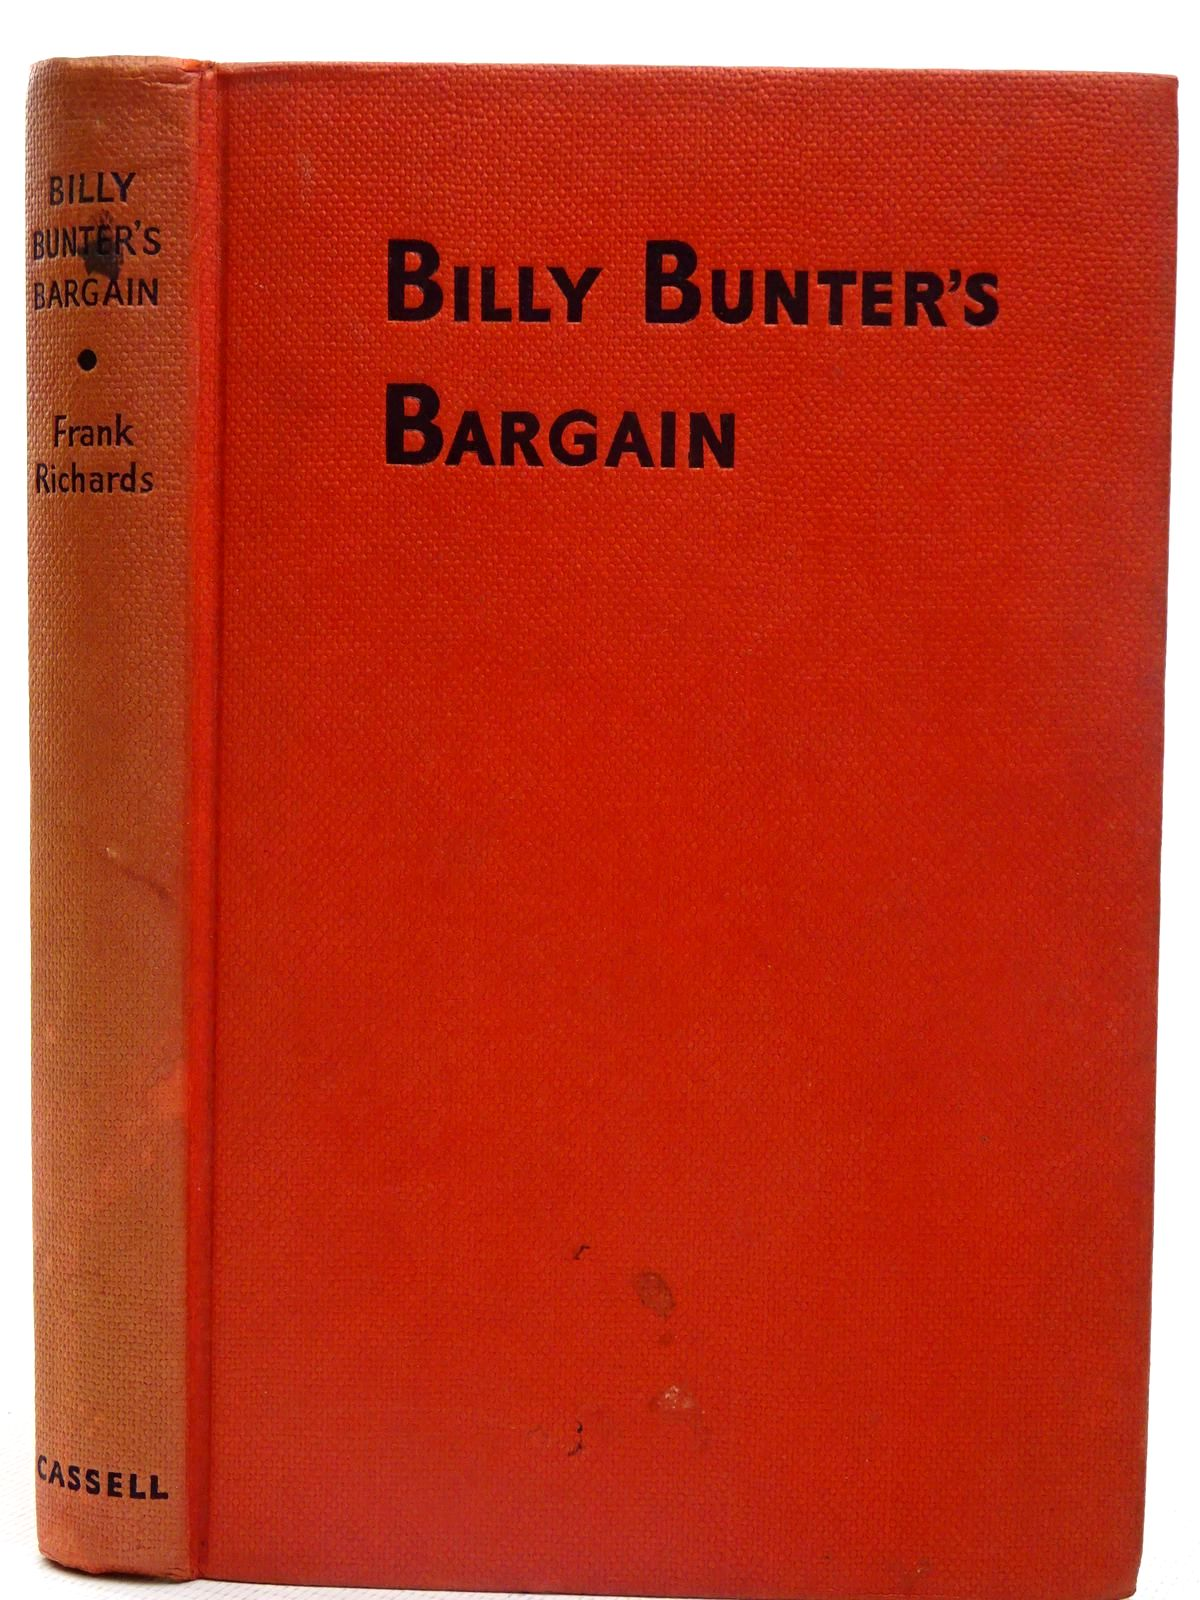 Photo of BILLY BUNTER'S BARGAIN written by Richards, Frank illustrated by Chapman, C.H. published by Cassell & Co. Ltd. (STOCK CODE: 2126709)  for sale by Stella & Rose's Books